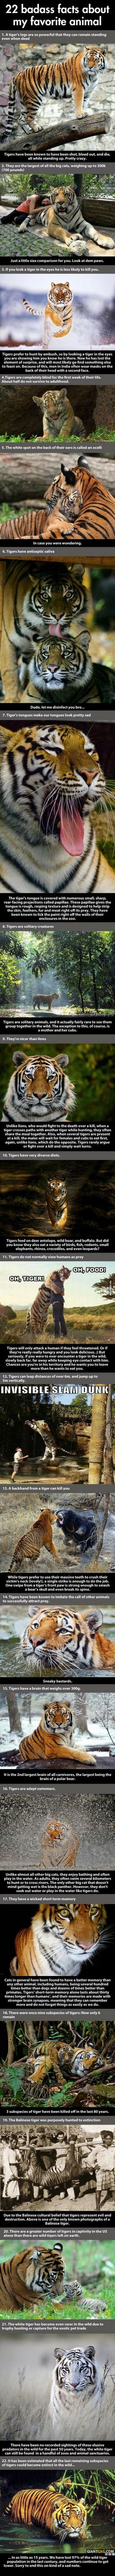 Pictures of the week -70 pics- 22 Badass Facts About Tigers